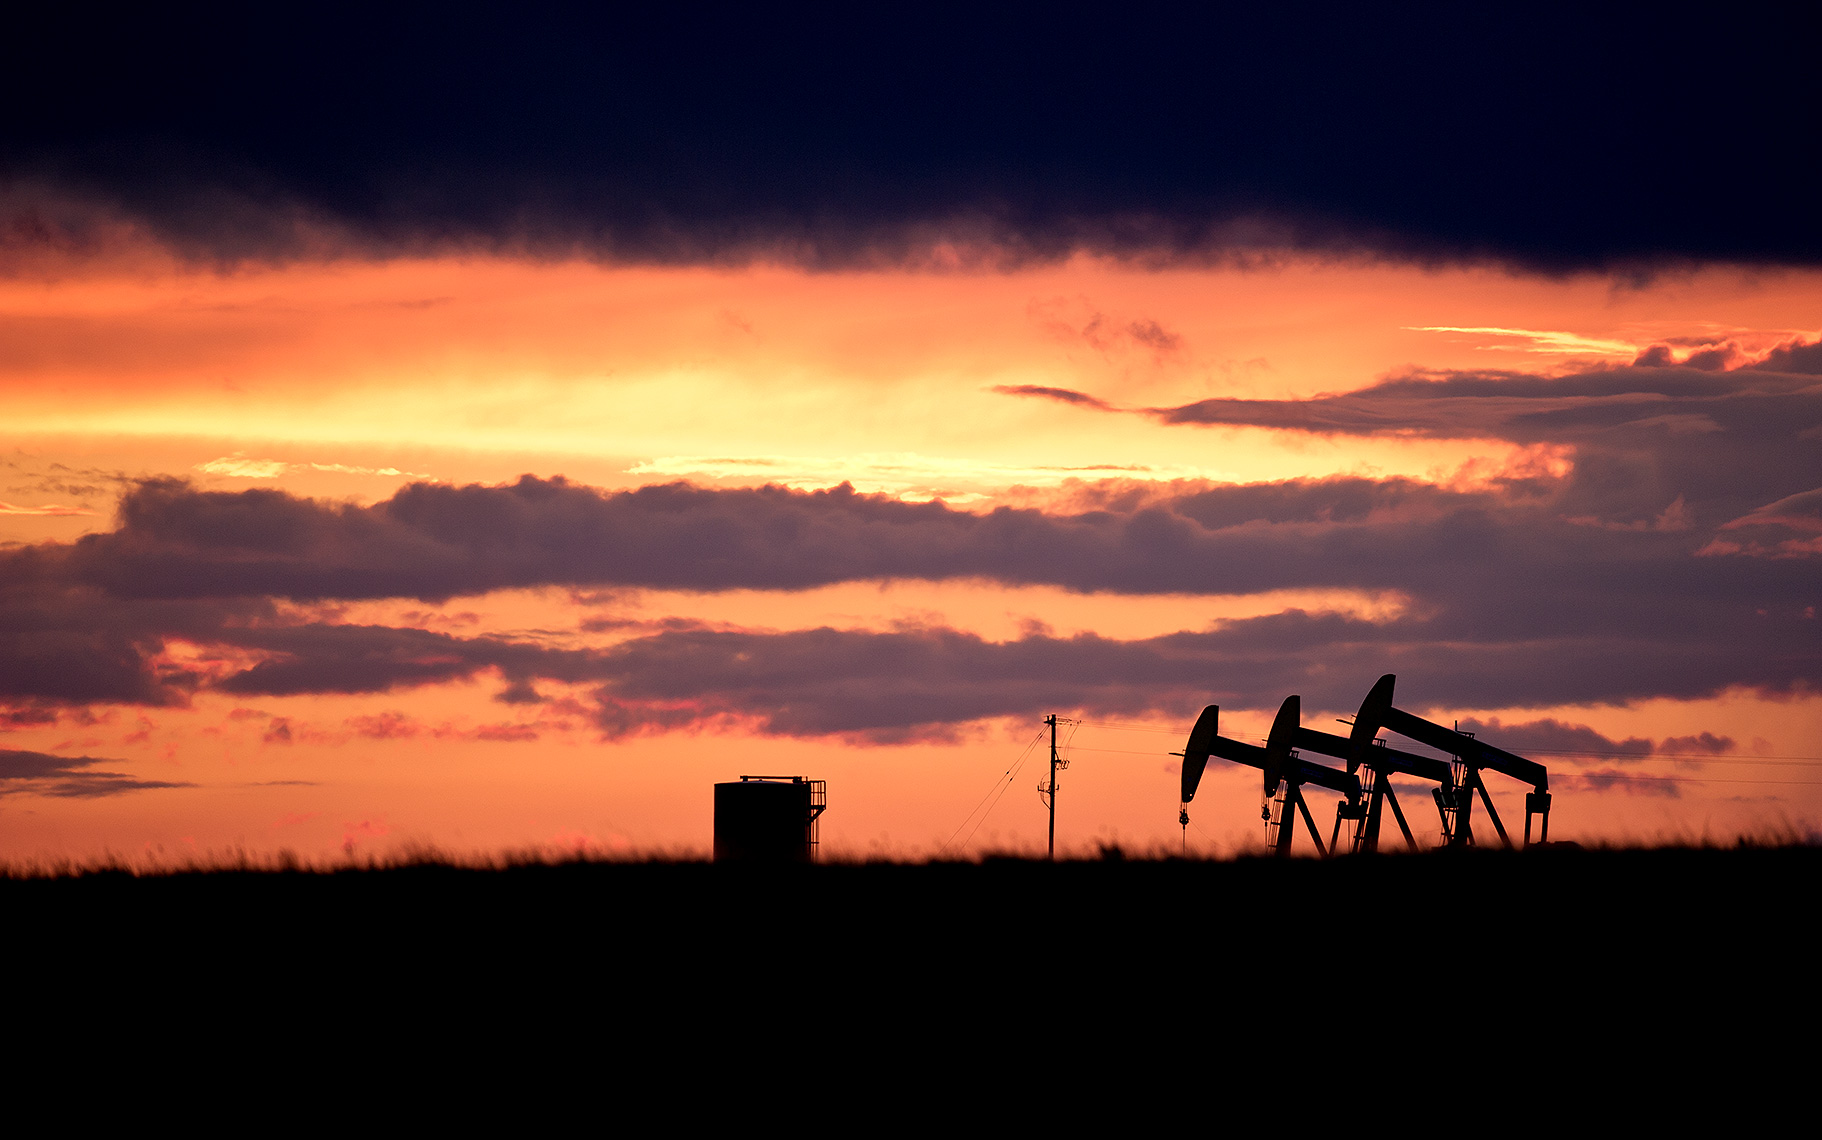 Oil Pumps on the Great Plains